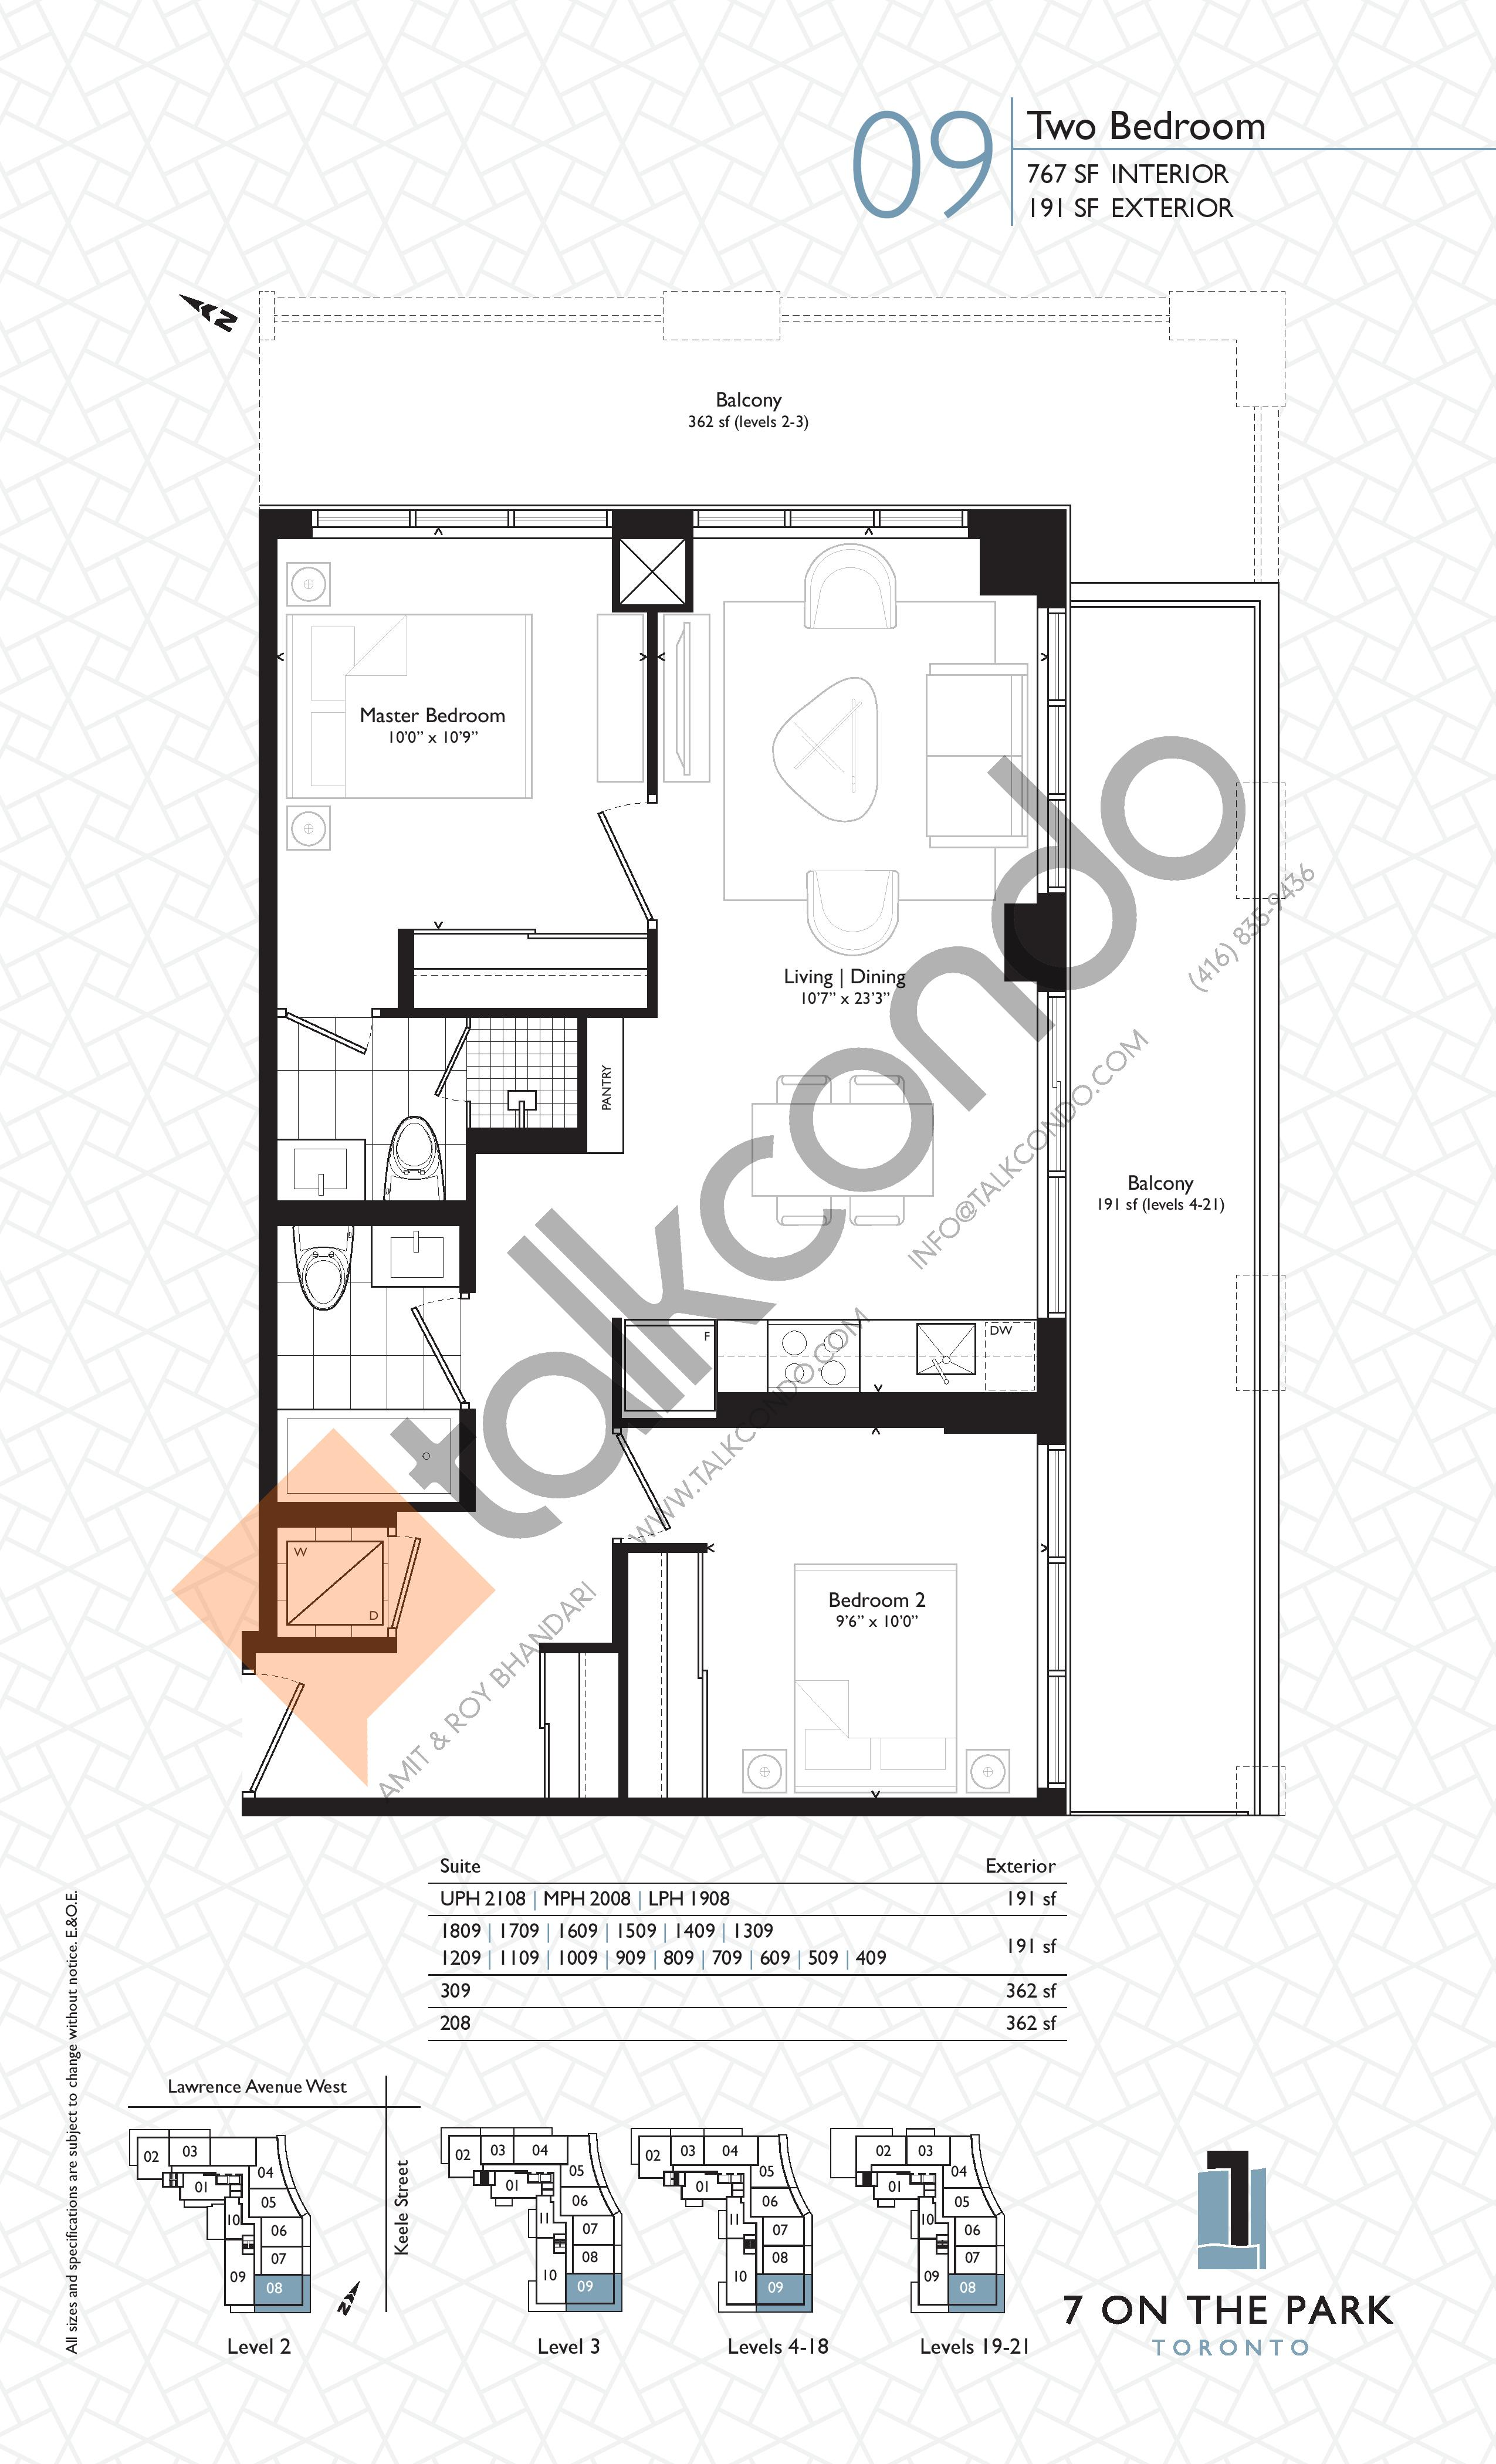 Suite 09 Floor Plan at 7 On The Park Condos - 767 sq.ft